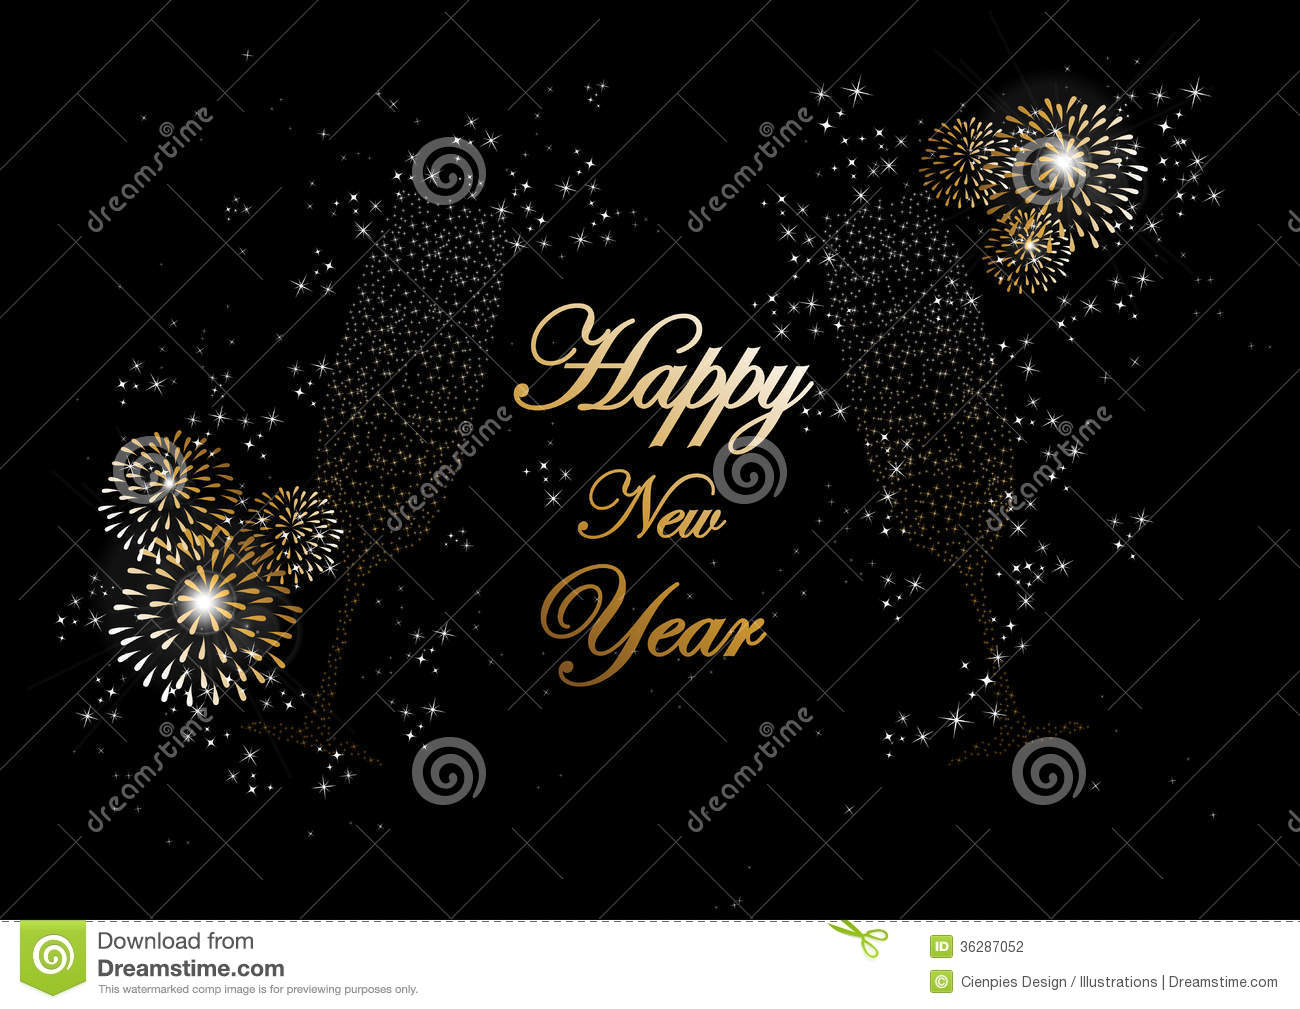 Happy new year 2014 champagne fireworks greeting card stock vector download happy new year 2014 champagne fireworks greeting card stock vector illustration of congratulation m4hsunfo